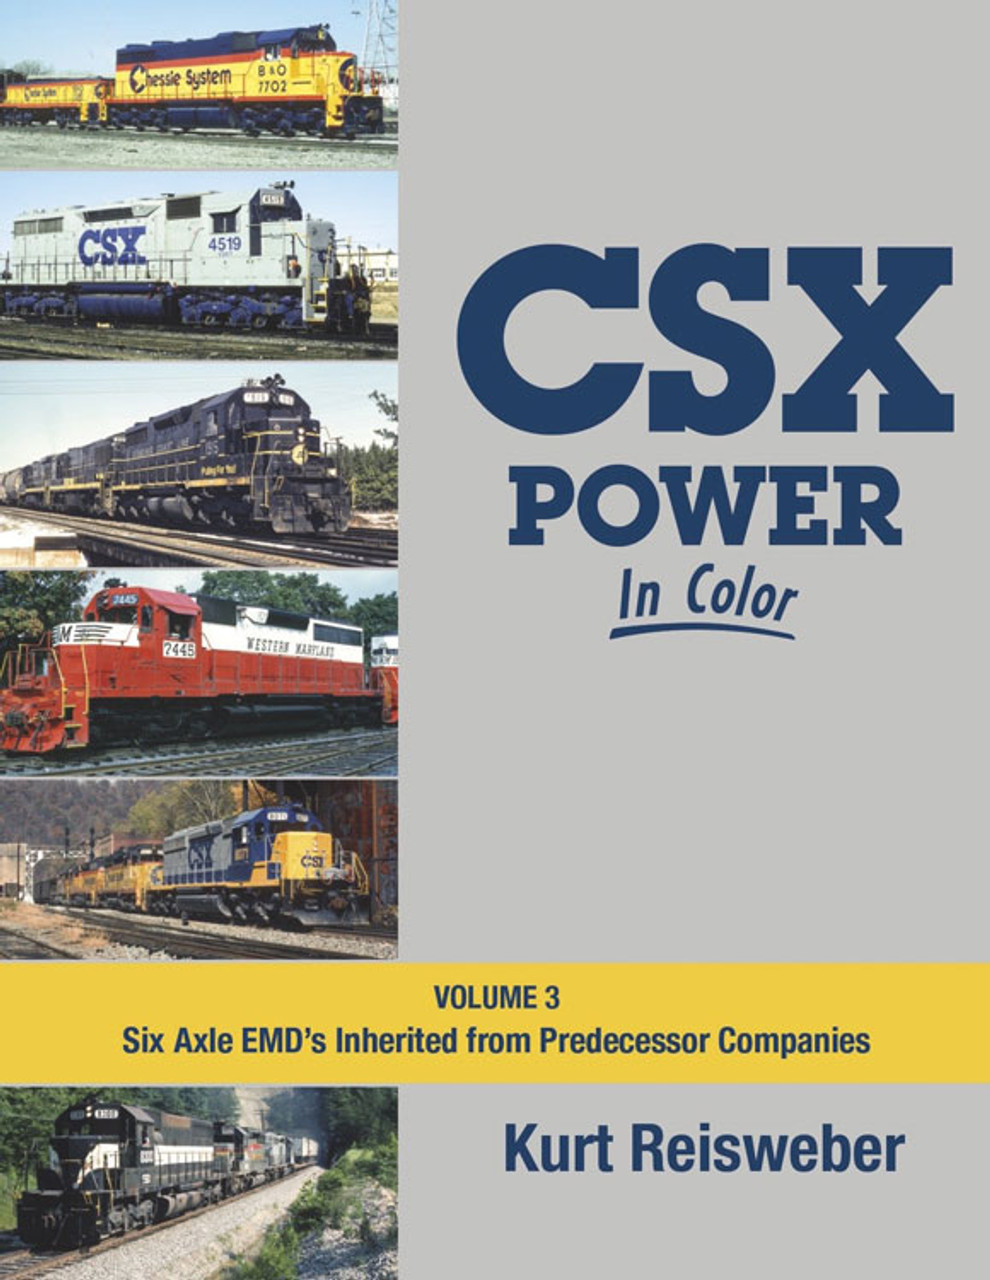 CSX Power in Color -- Volume 3: Six-Axle EMDs Inherited from Predecessor Companies